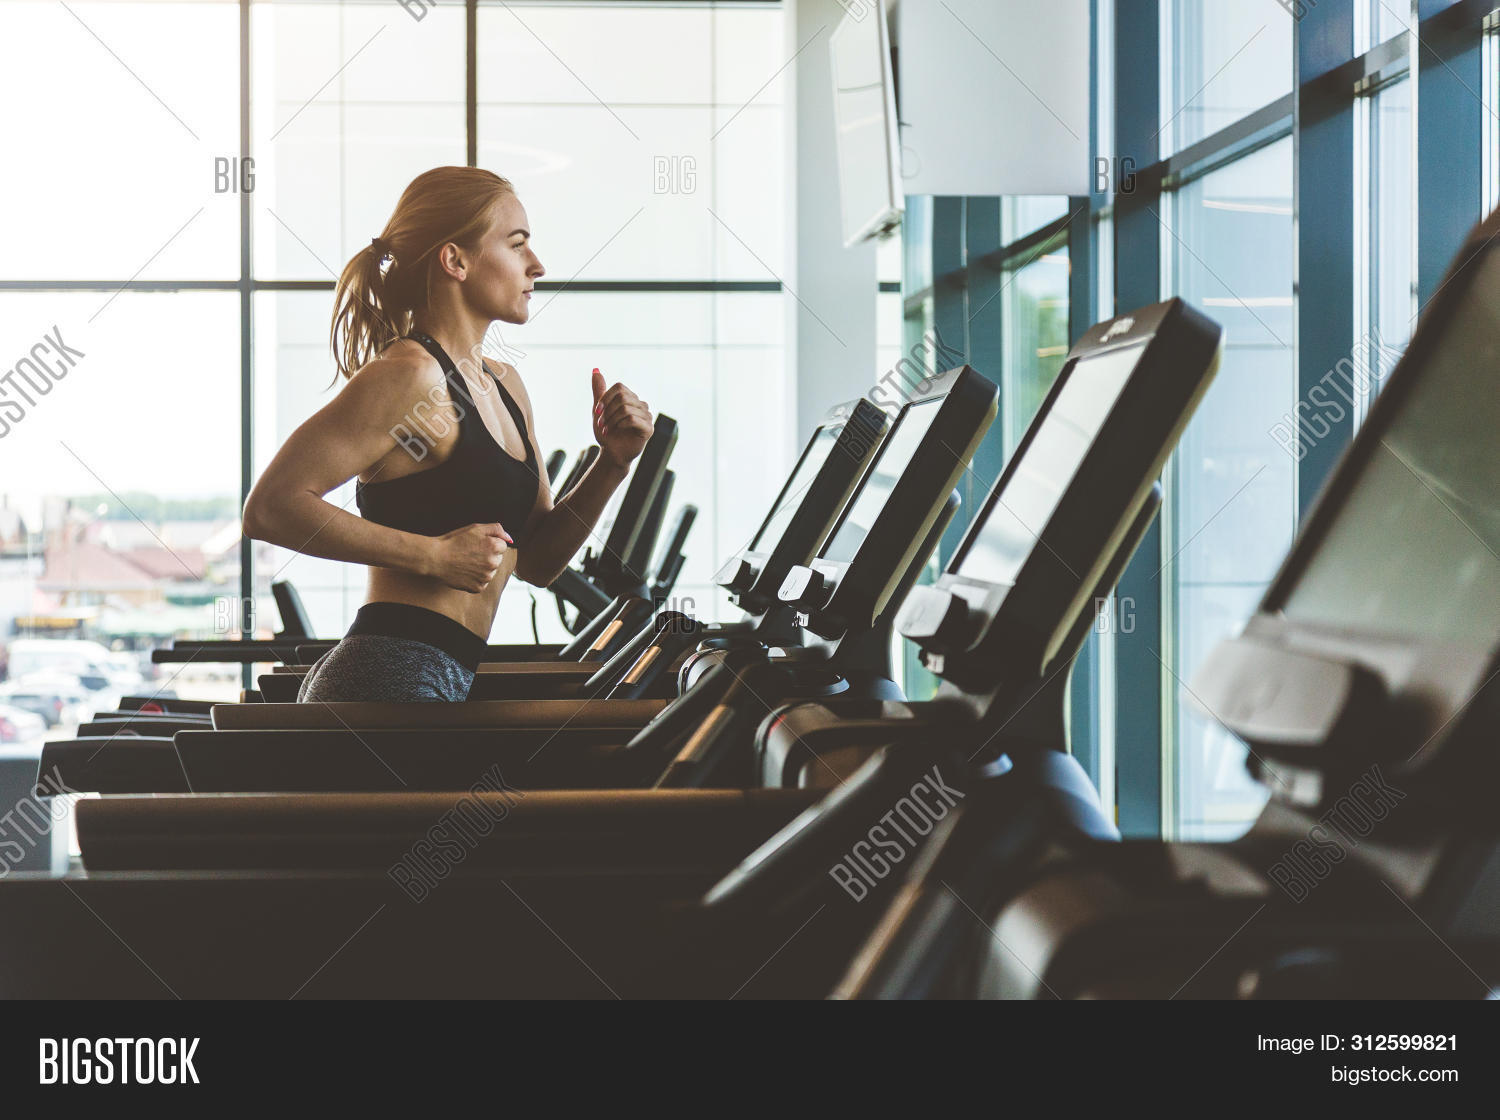 The Athletic Woman Dressed In A Black Sportswear Running On The Treadmill In The Modern Gym